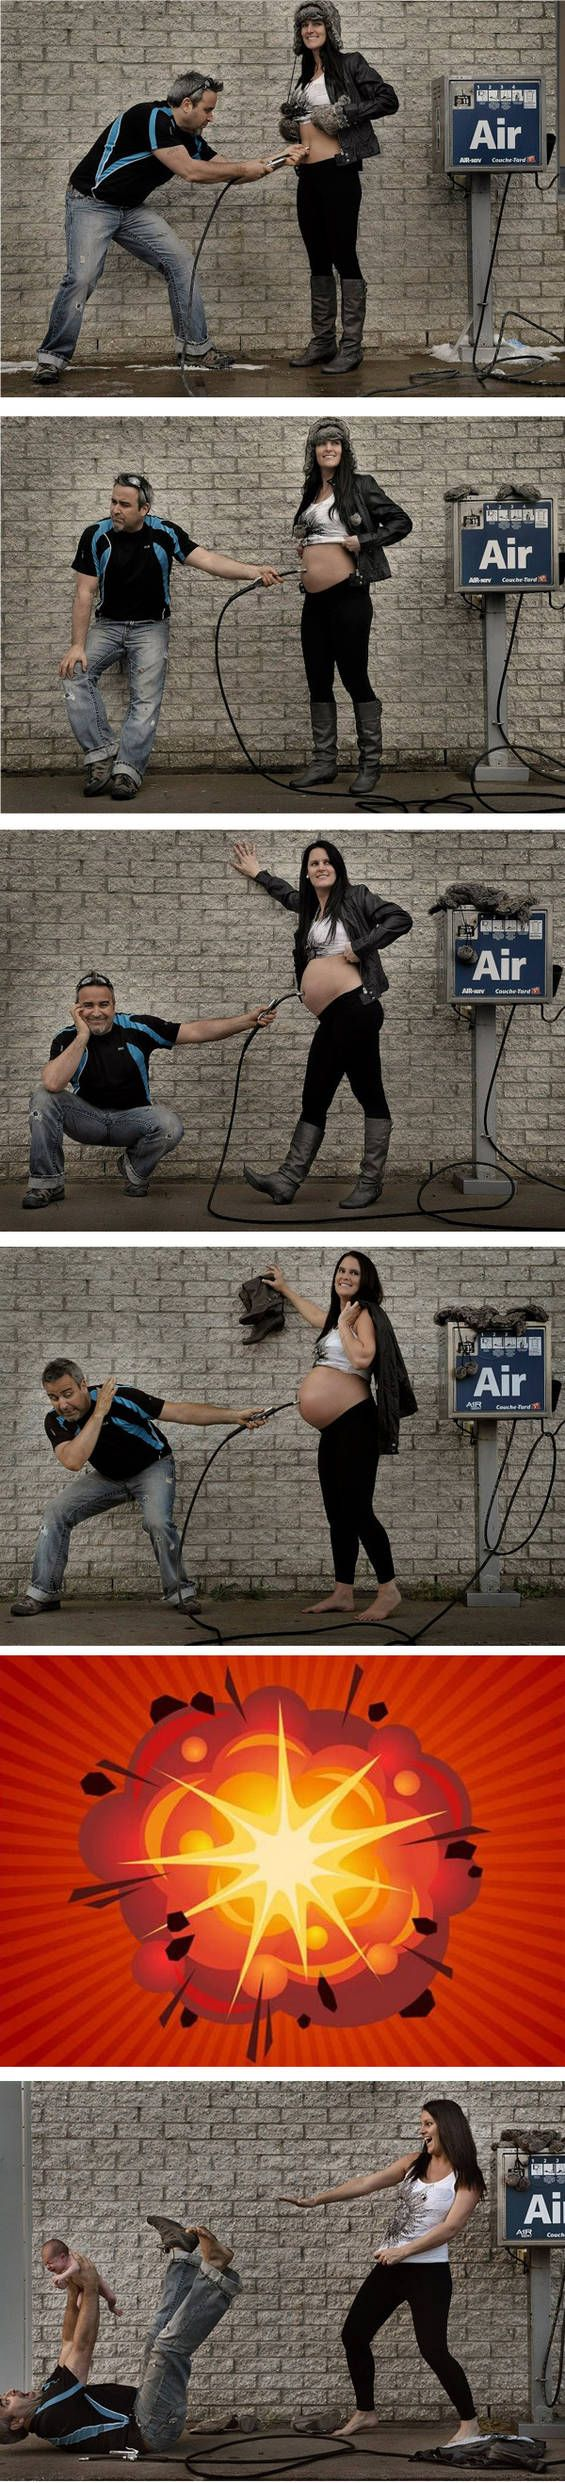 Air pump bump photos + 6 other creative ideas